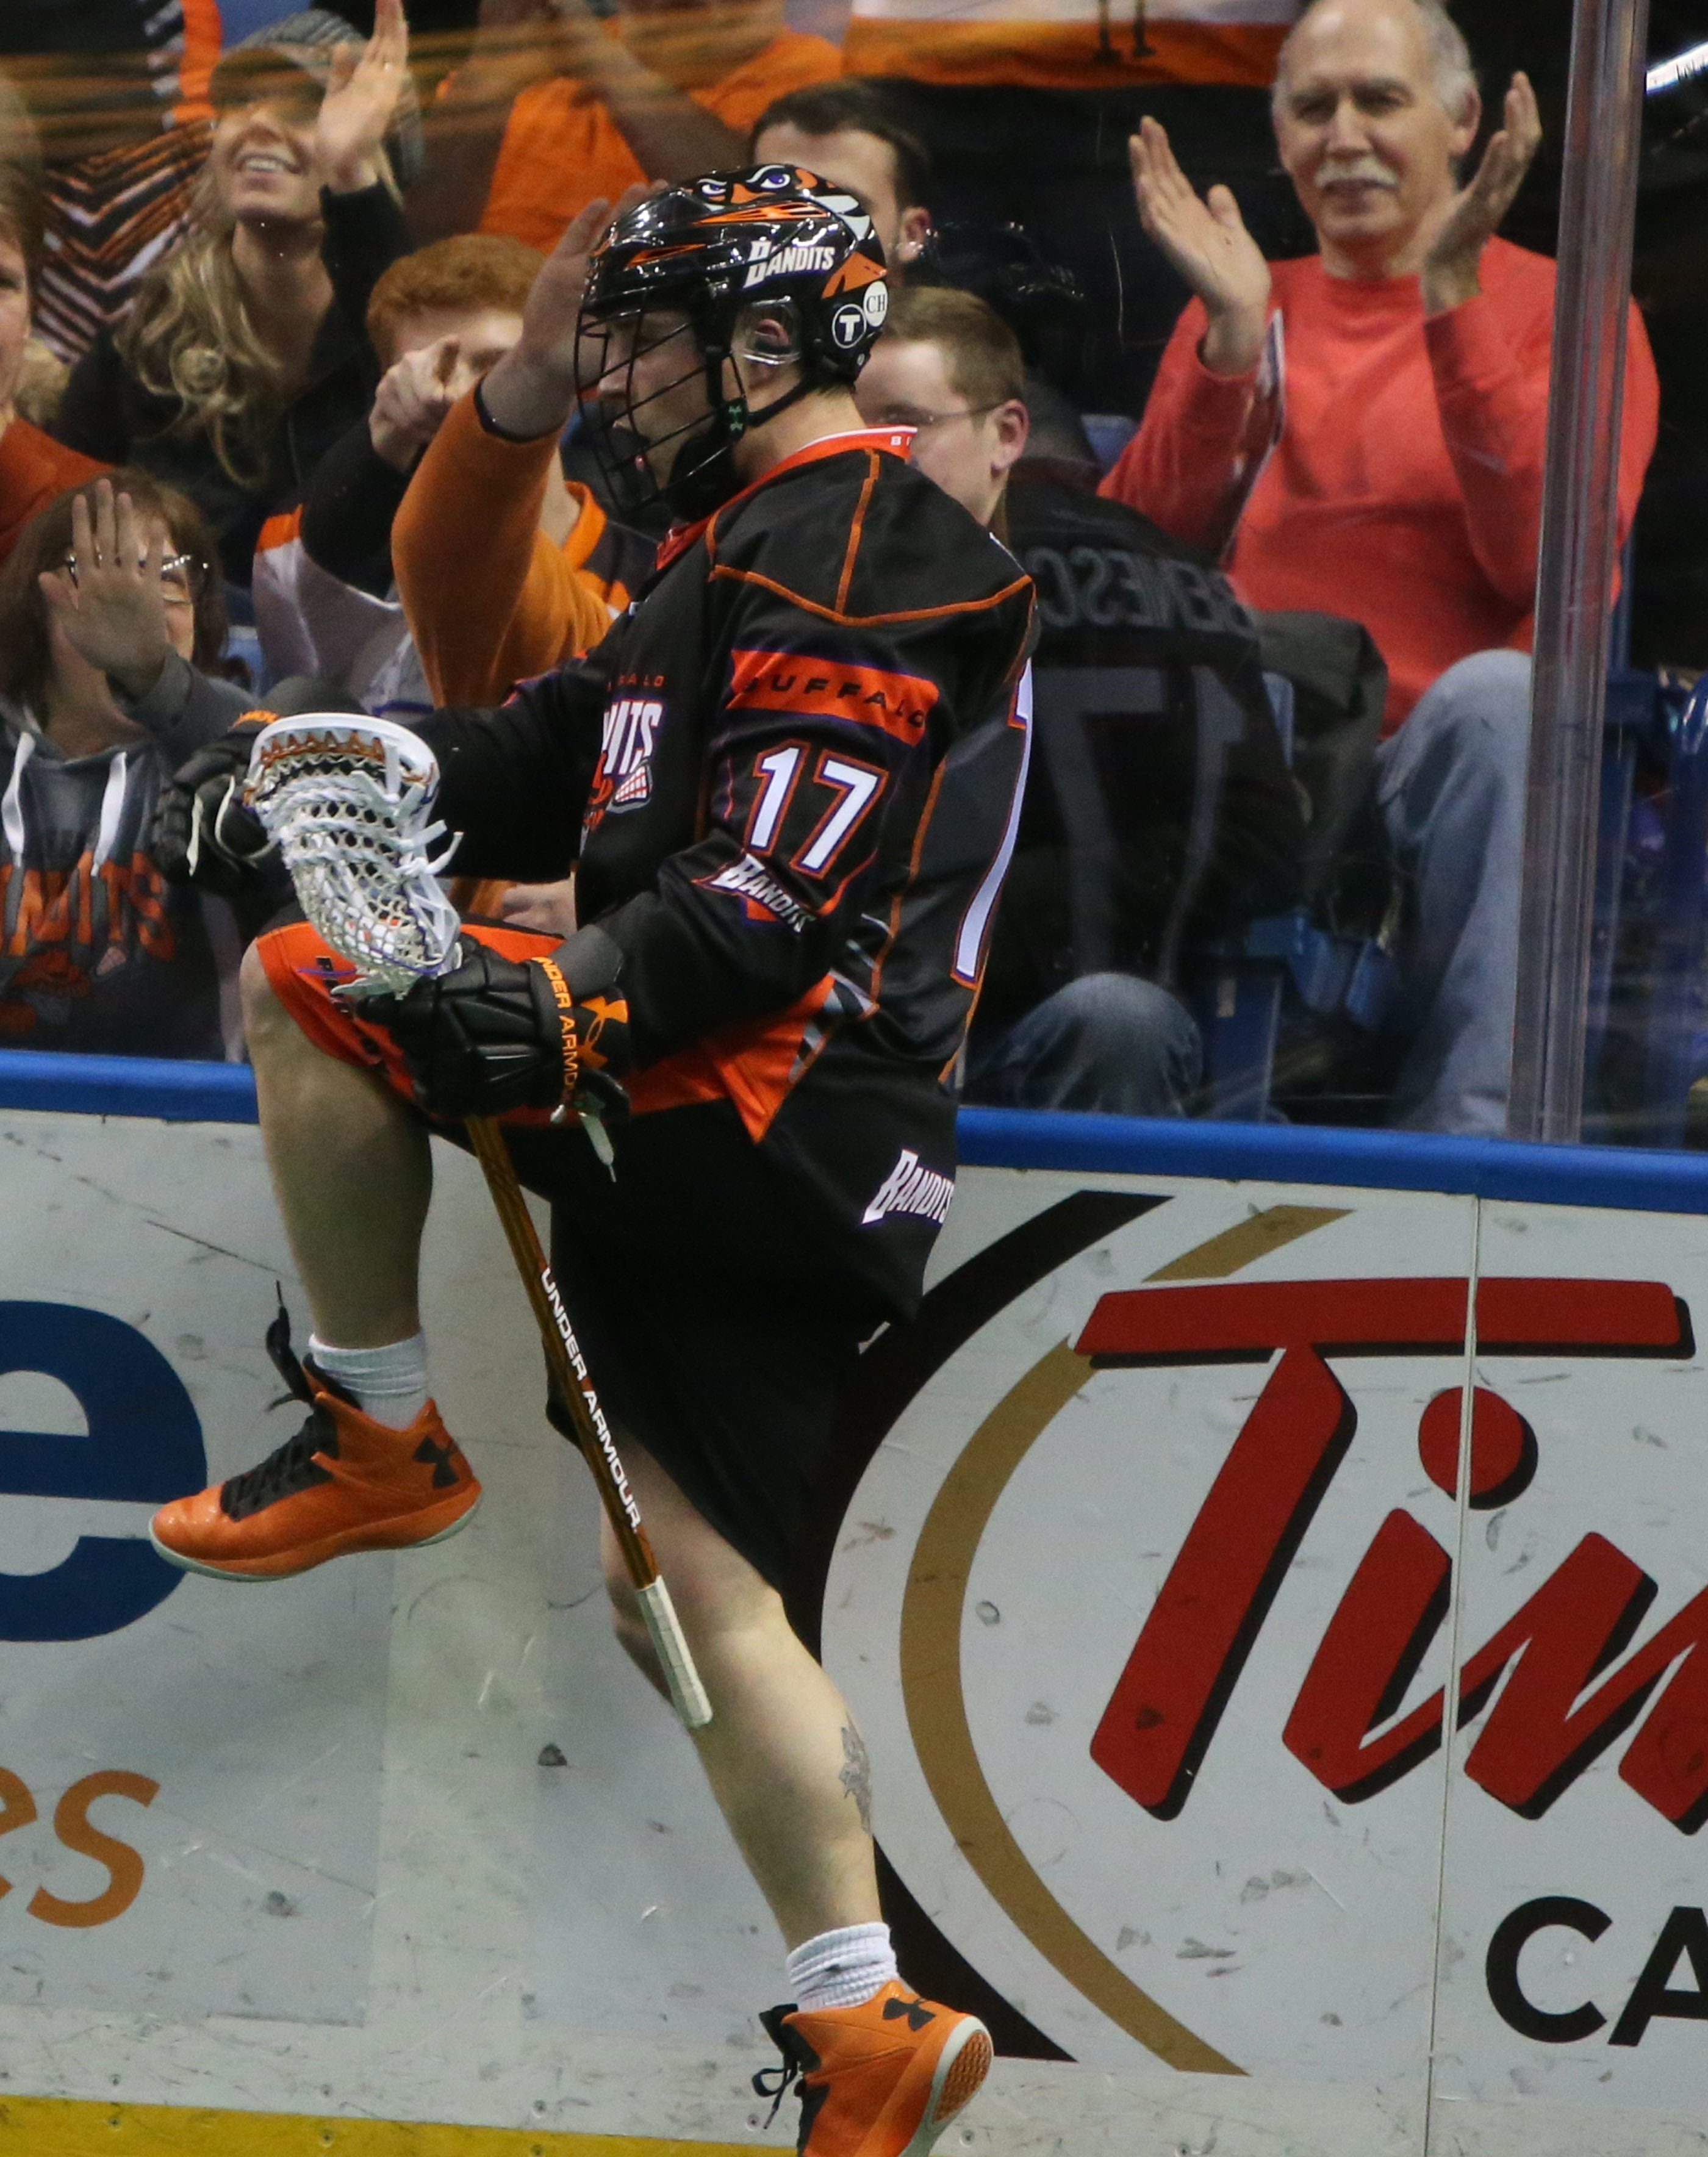 Ryan Benesch had four goals and four assists in the Bandits' loss on Saturday.